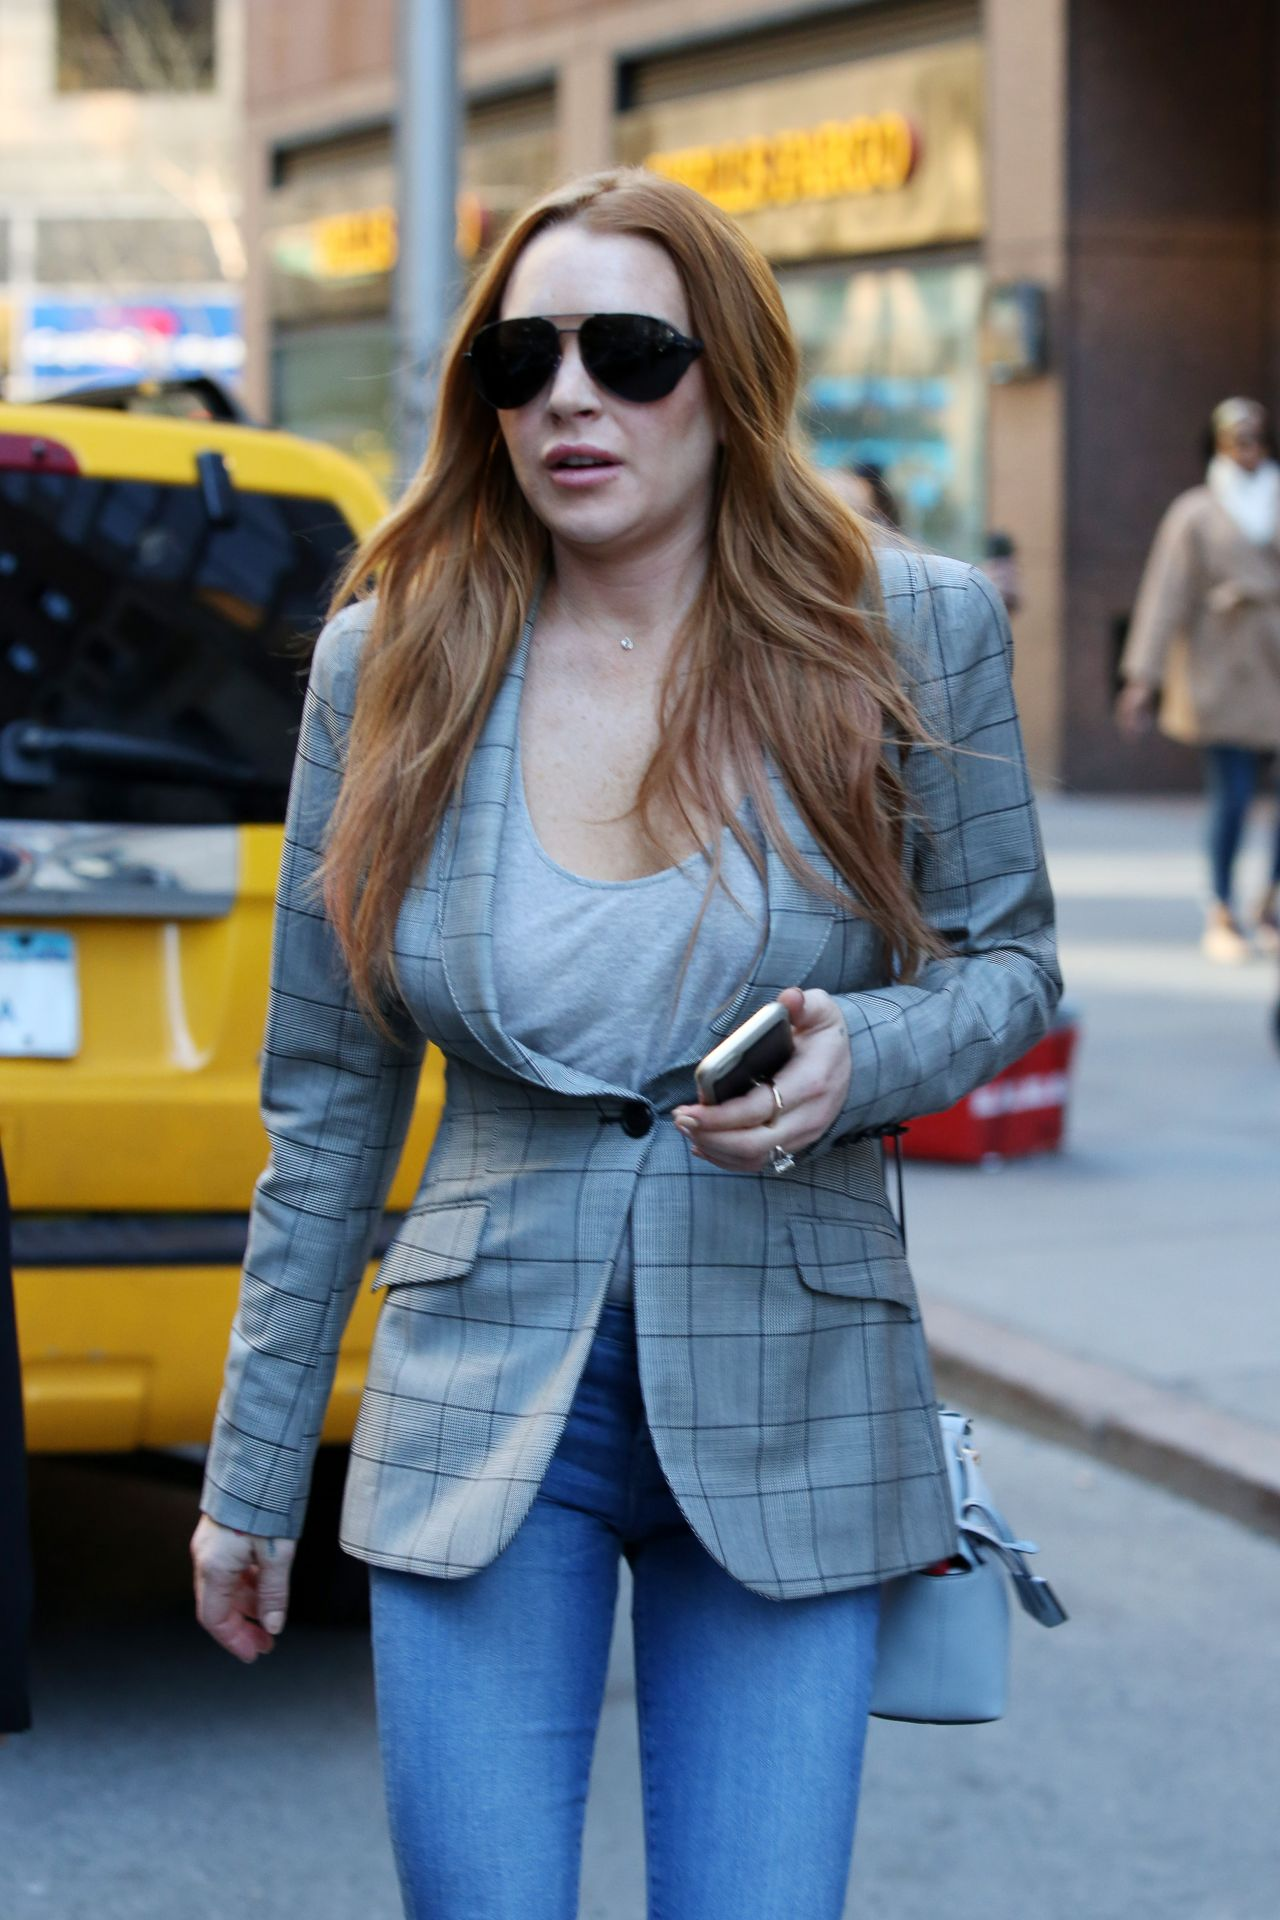 Lindsay Lohan - Out in New York City 4/16/2016 Lindsay Lohan